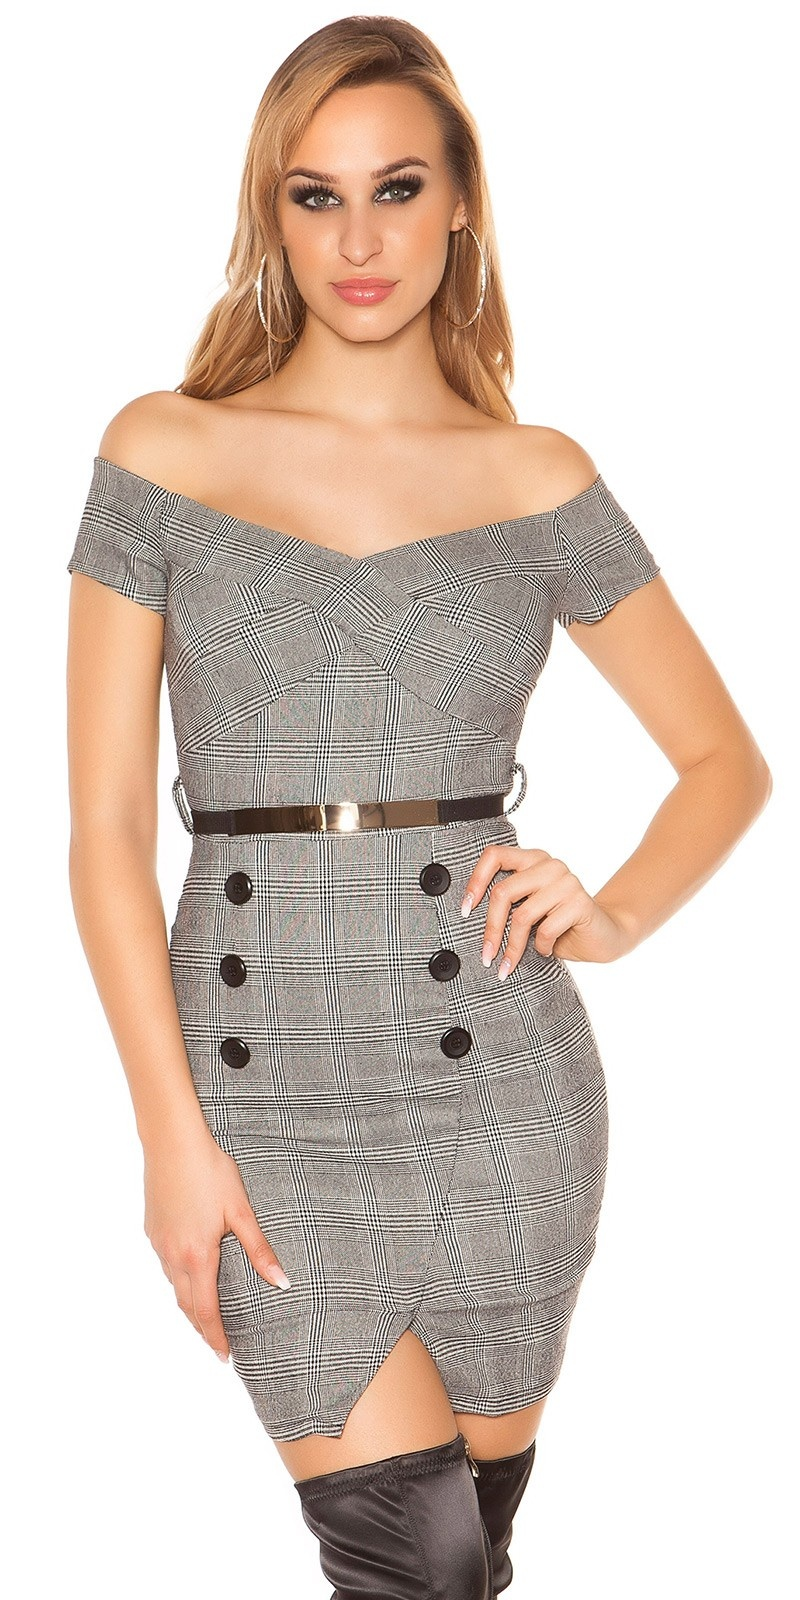 Trendy business look dress plaid with belt Blackwhite